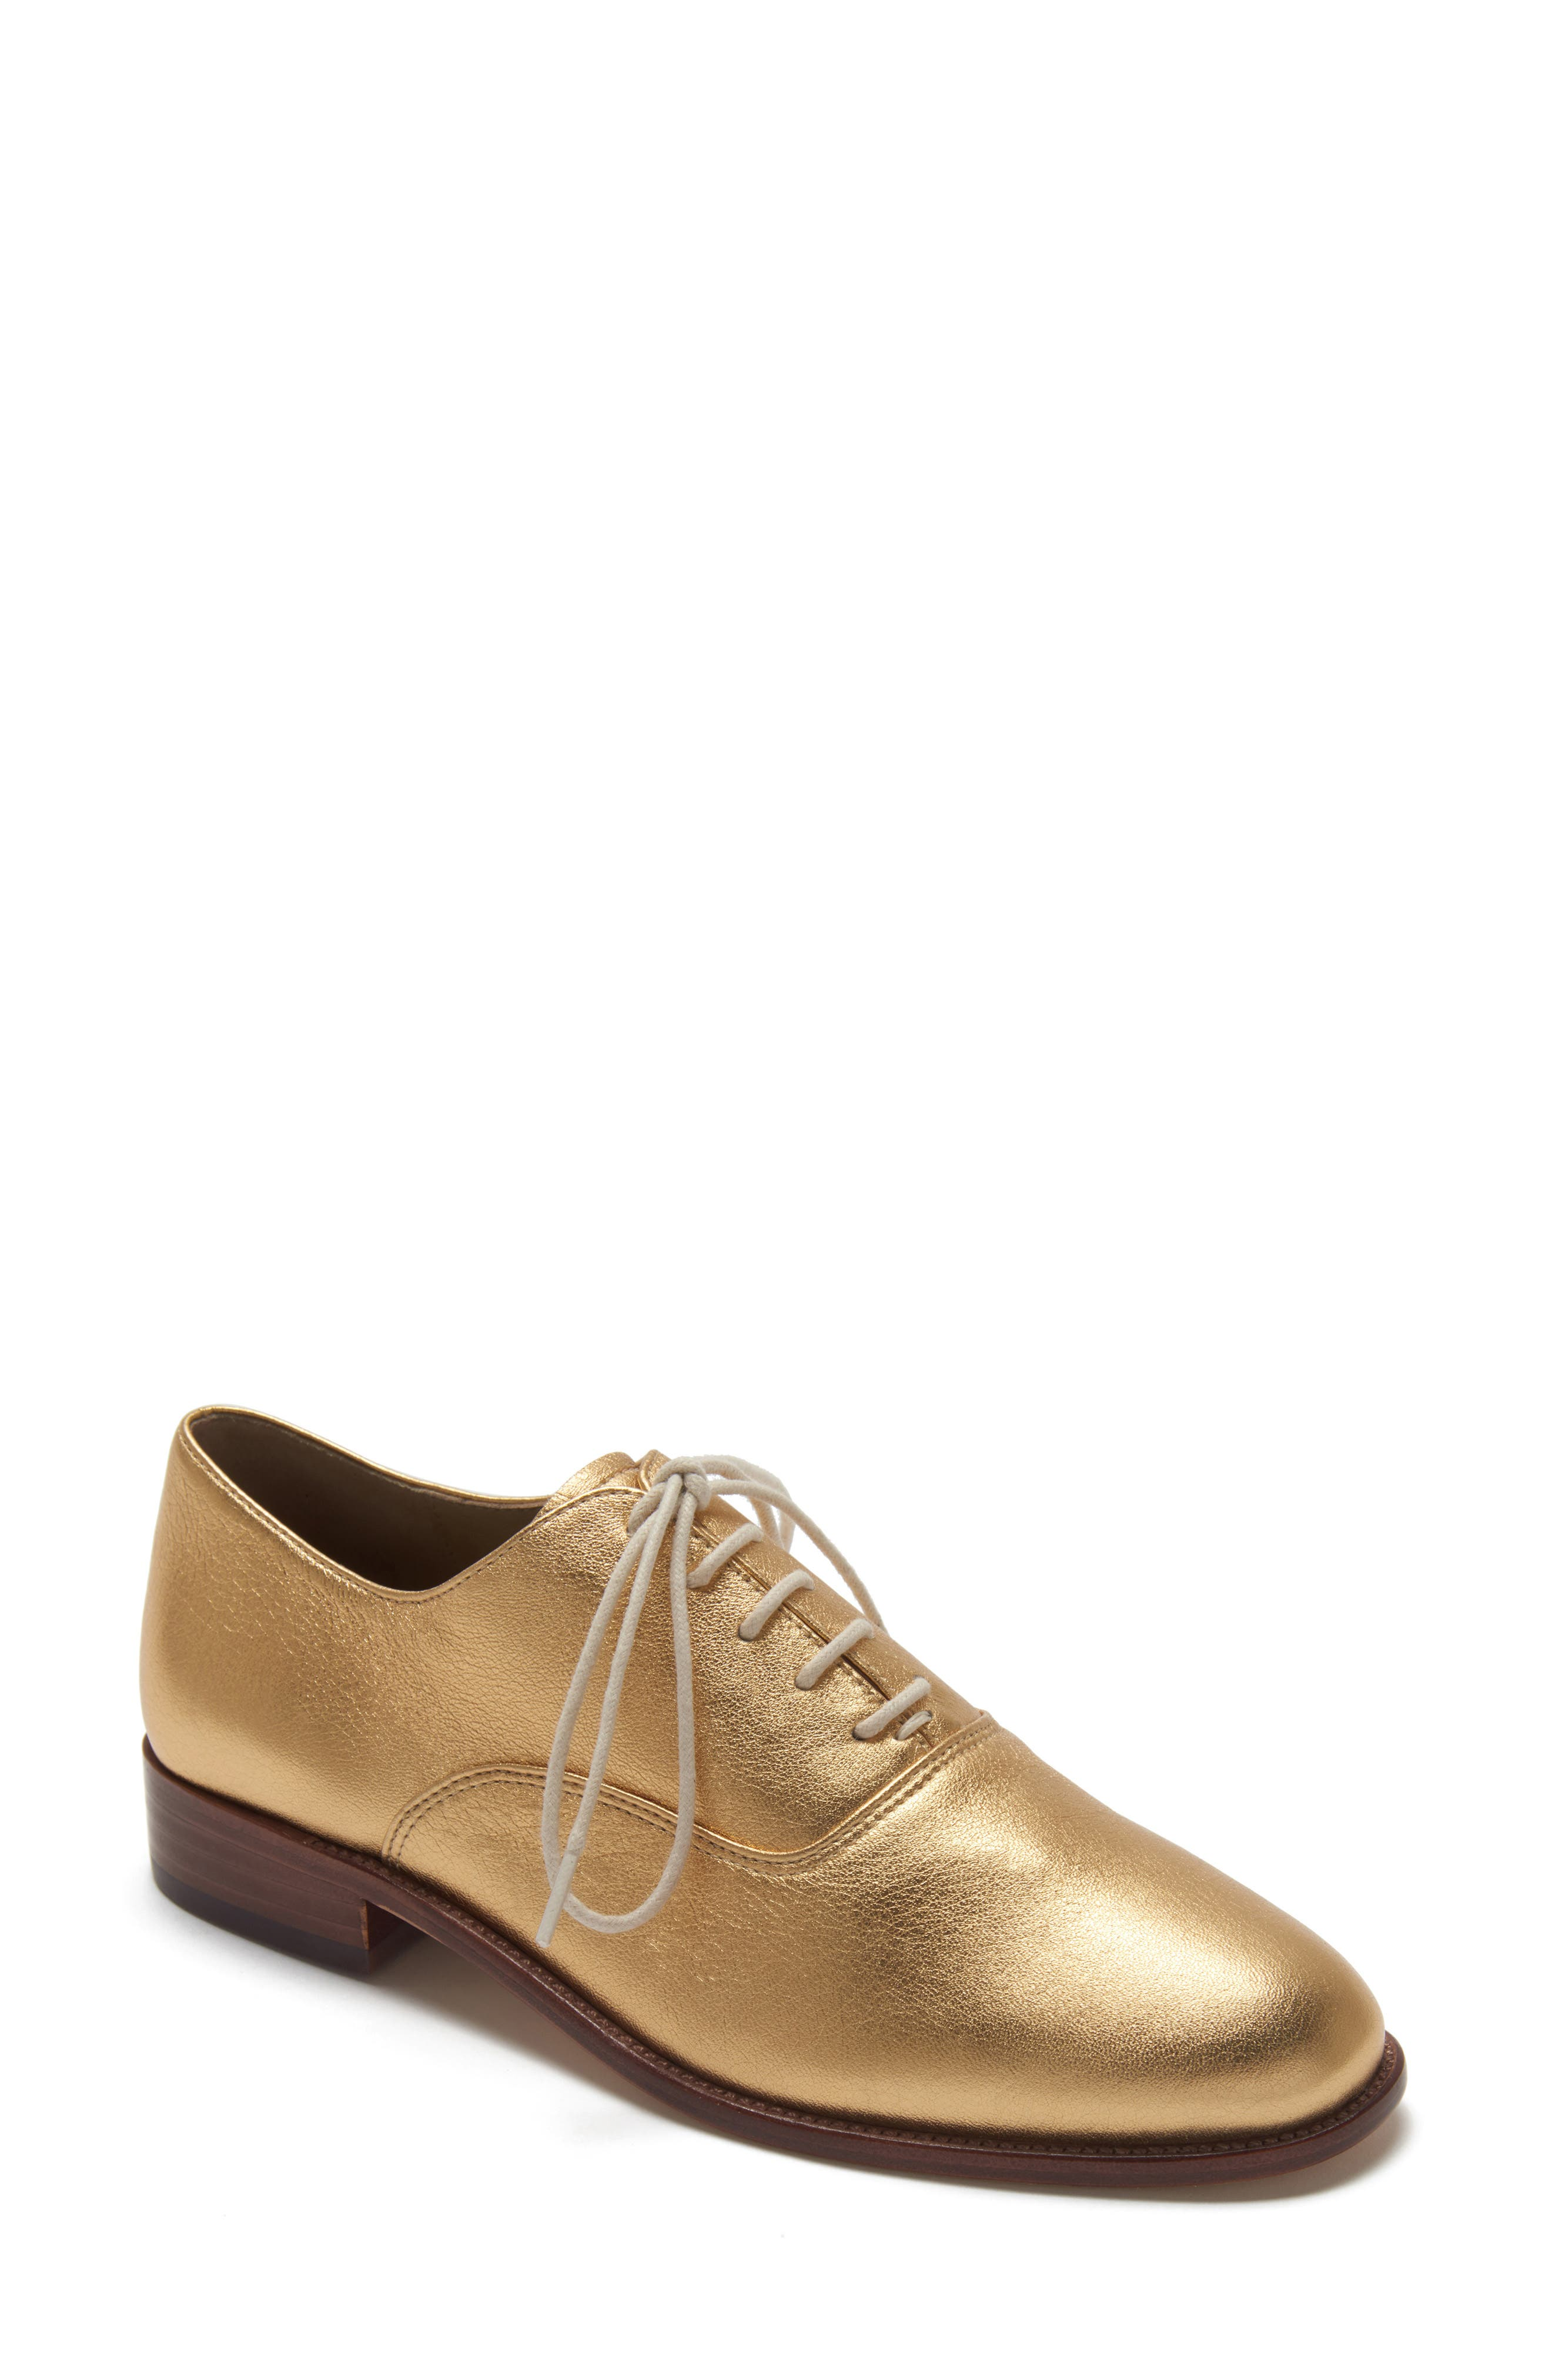 ETIENNE AIGNER Emery Lace-Up Oxford in Oro Leather